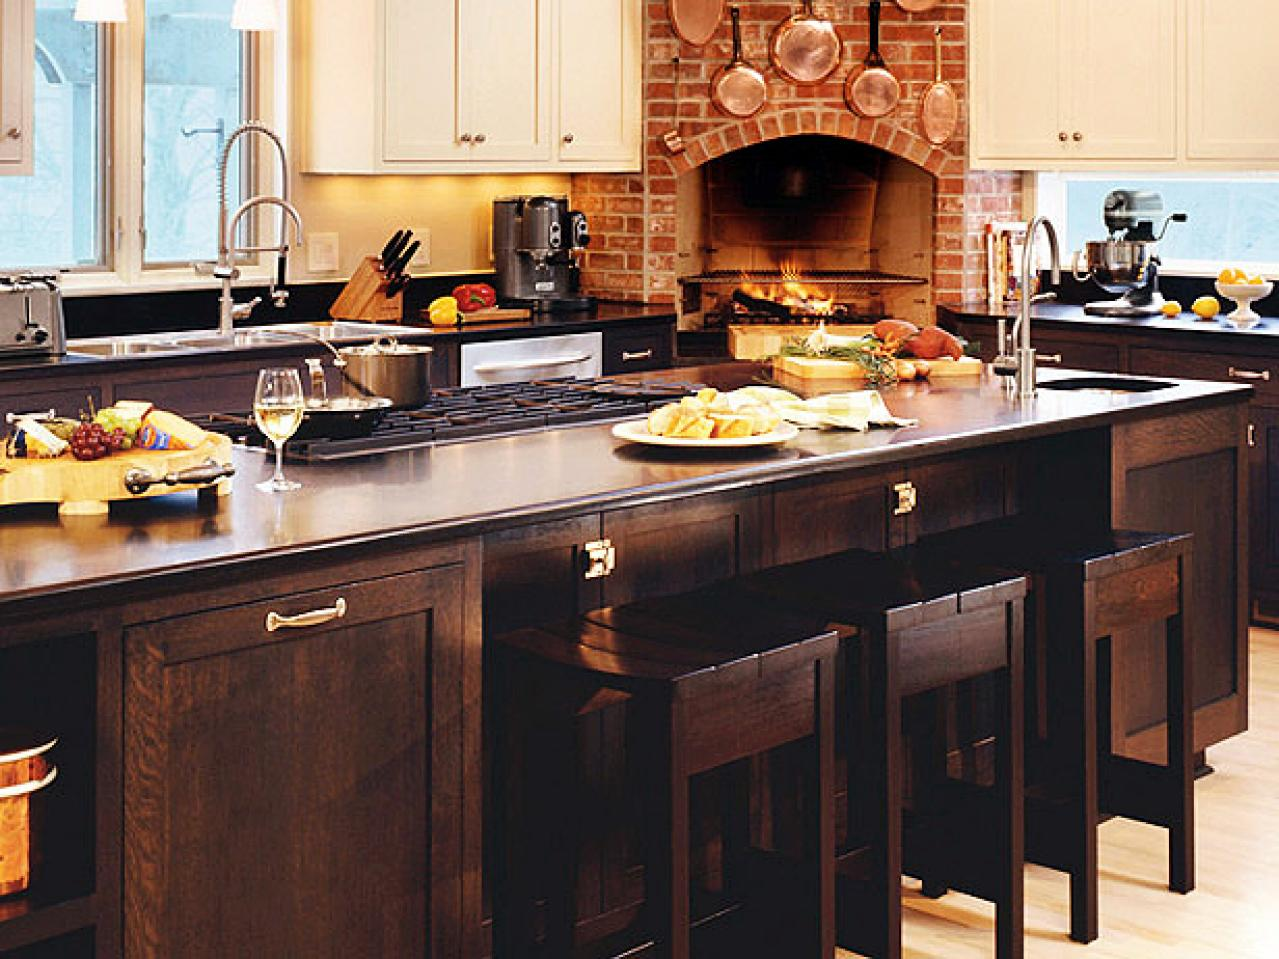 kitchen island with oven storage solutions 10 islands ideas and design cabinets